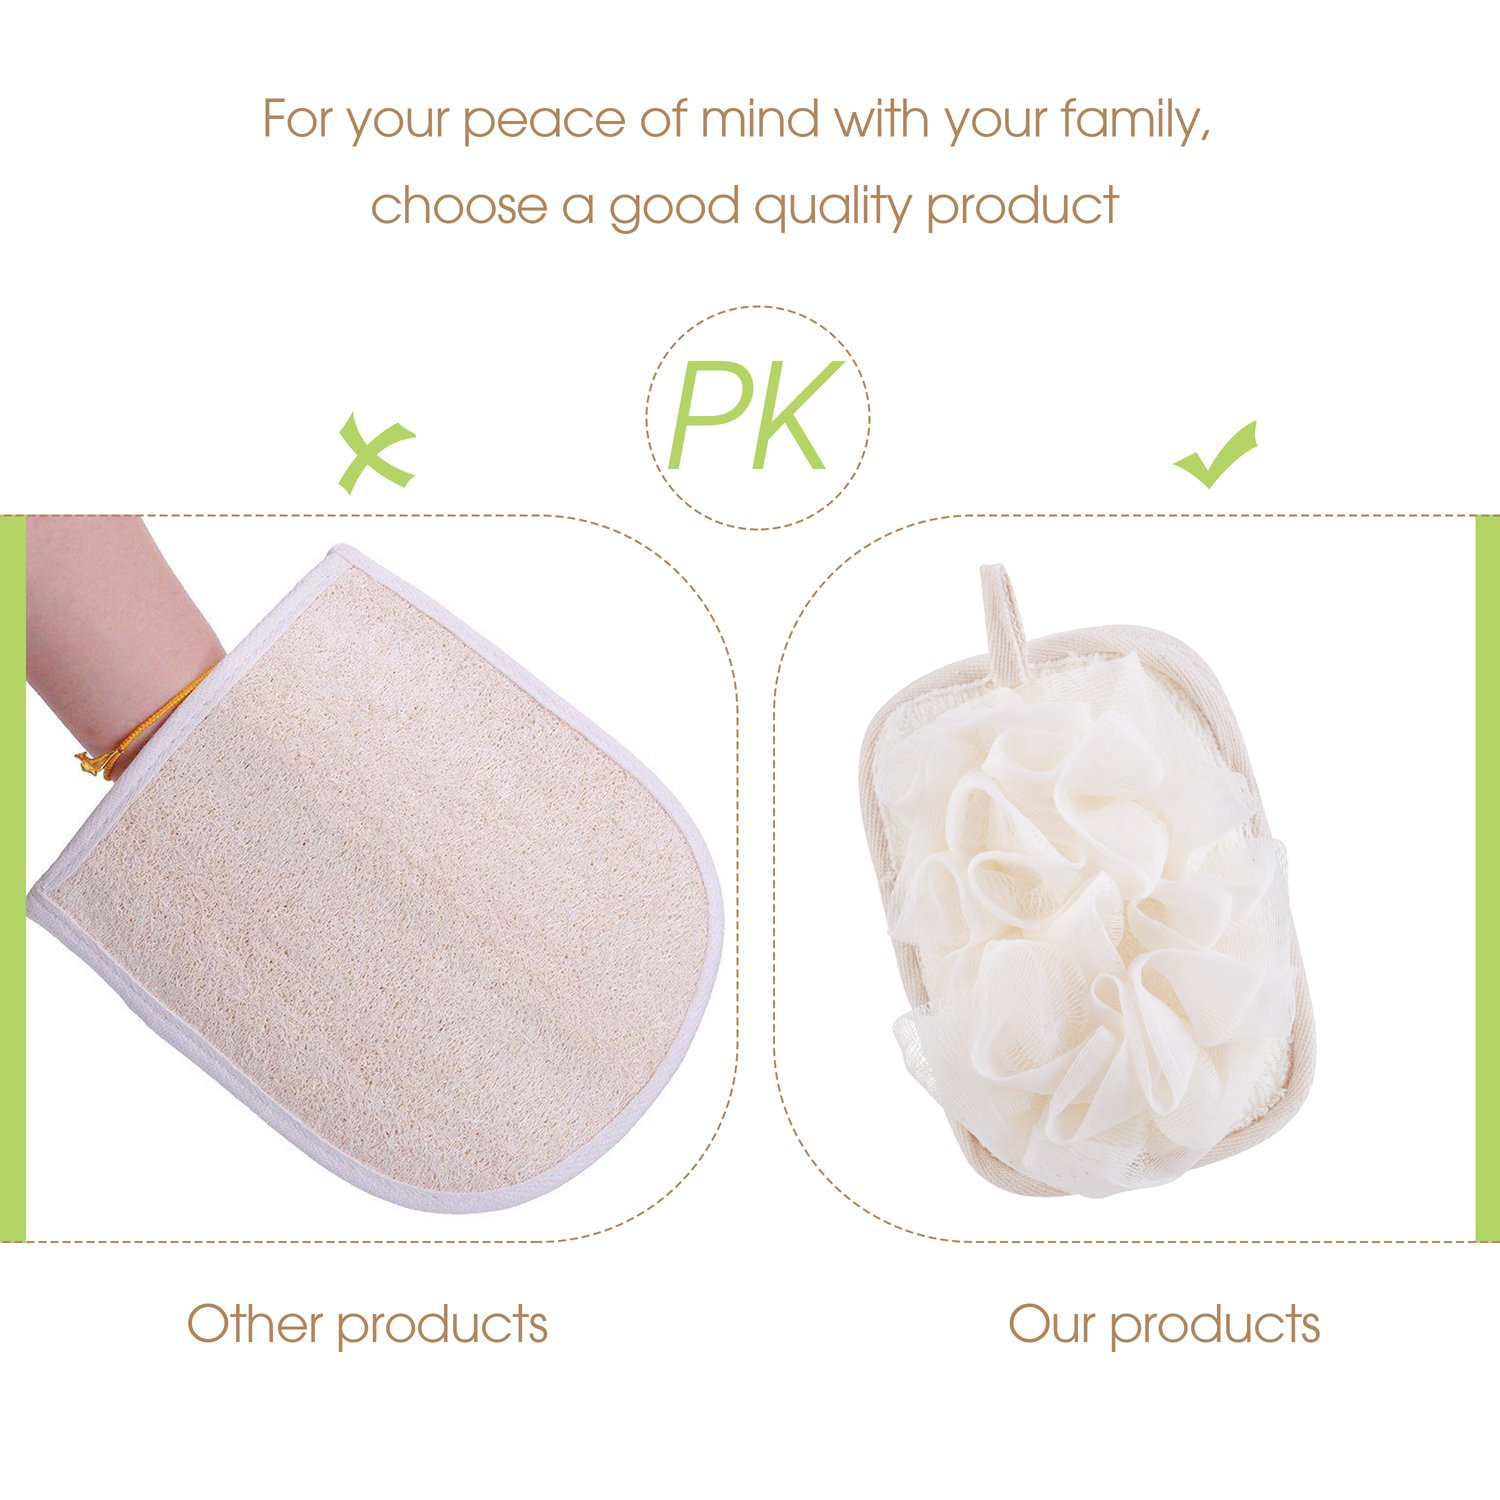 mikimini Bath Mitt for Women, Bath Pouf Mesh Brushes 2 Packs Set | Loofah Sponge & Exfoliating Pad 2 in 1 Professional Design | Exfoliating Gently with the Elastic Hand Strap or Wearing the Mitten by mikimini (Image #6)